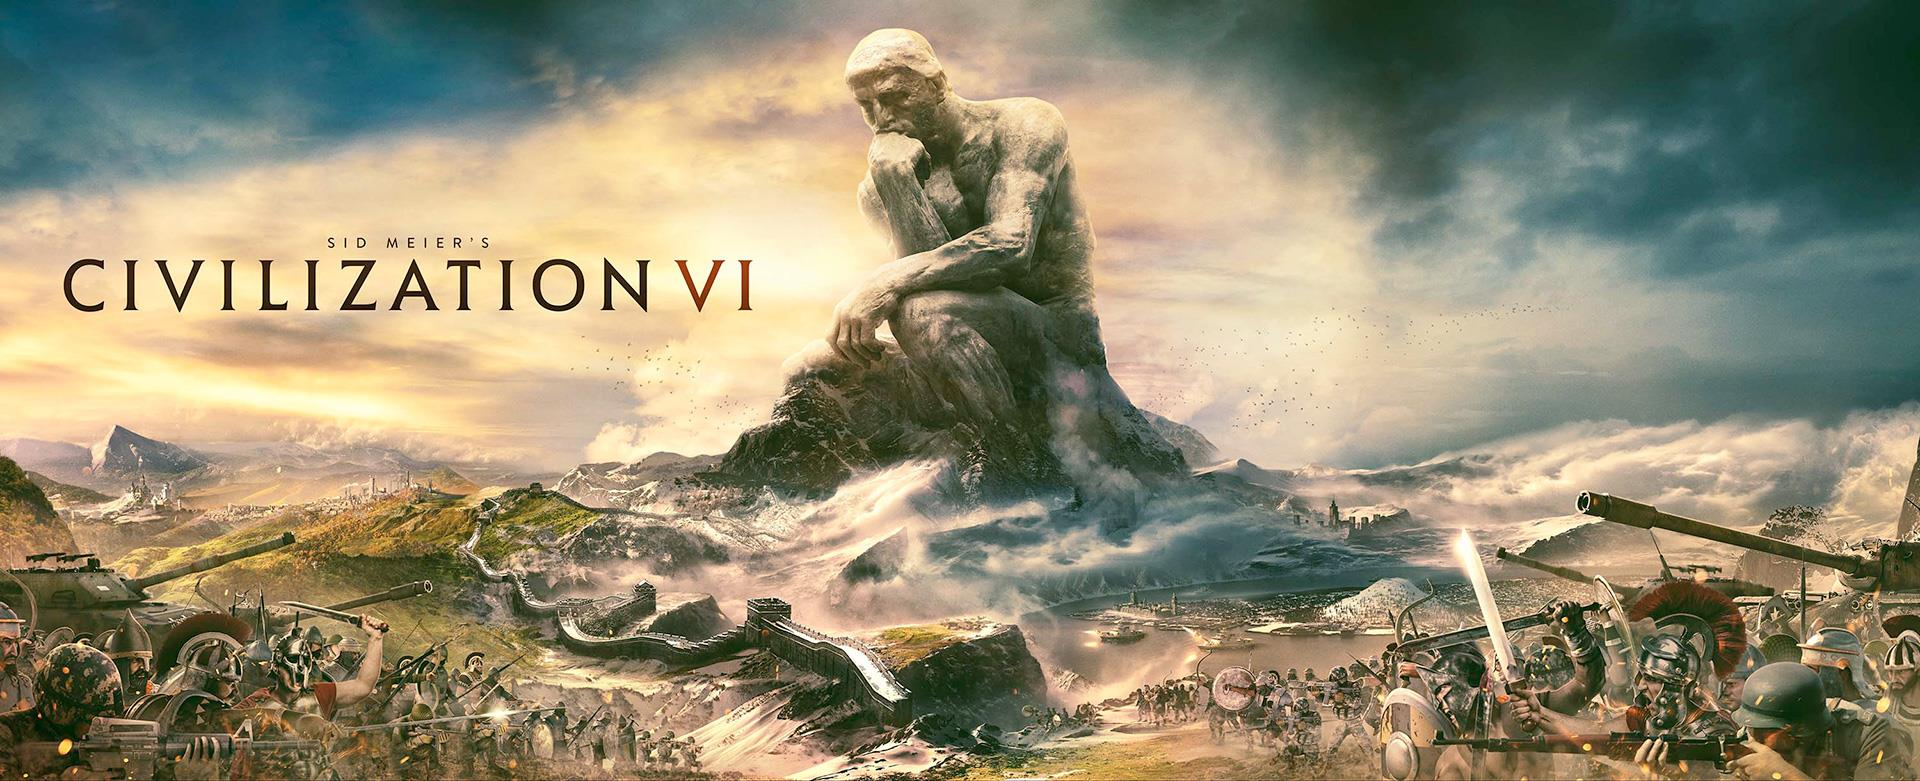 Easter weekend deals: 37% off Civilization VI, Xbox and PC spring sales screenshot